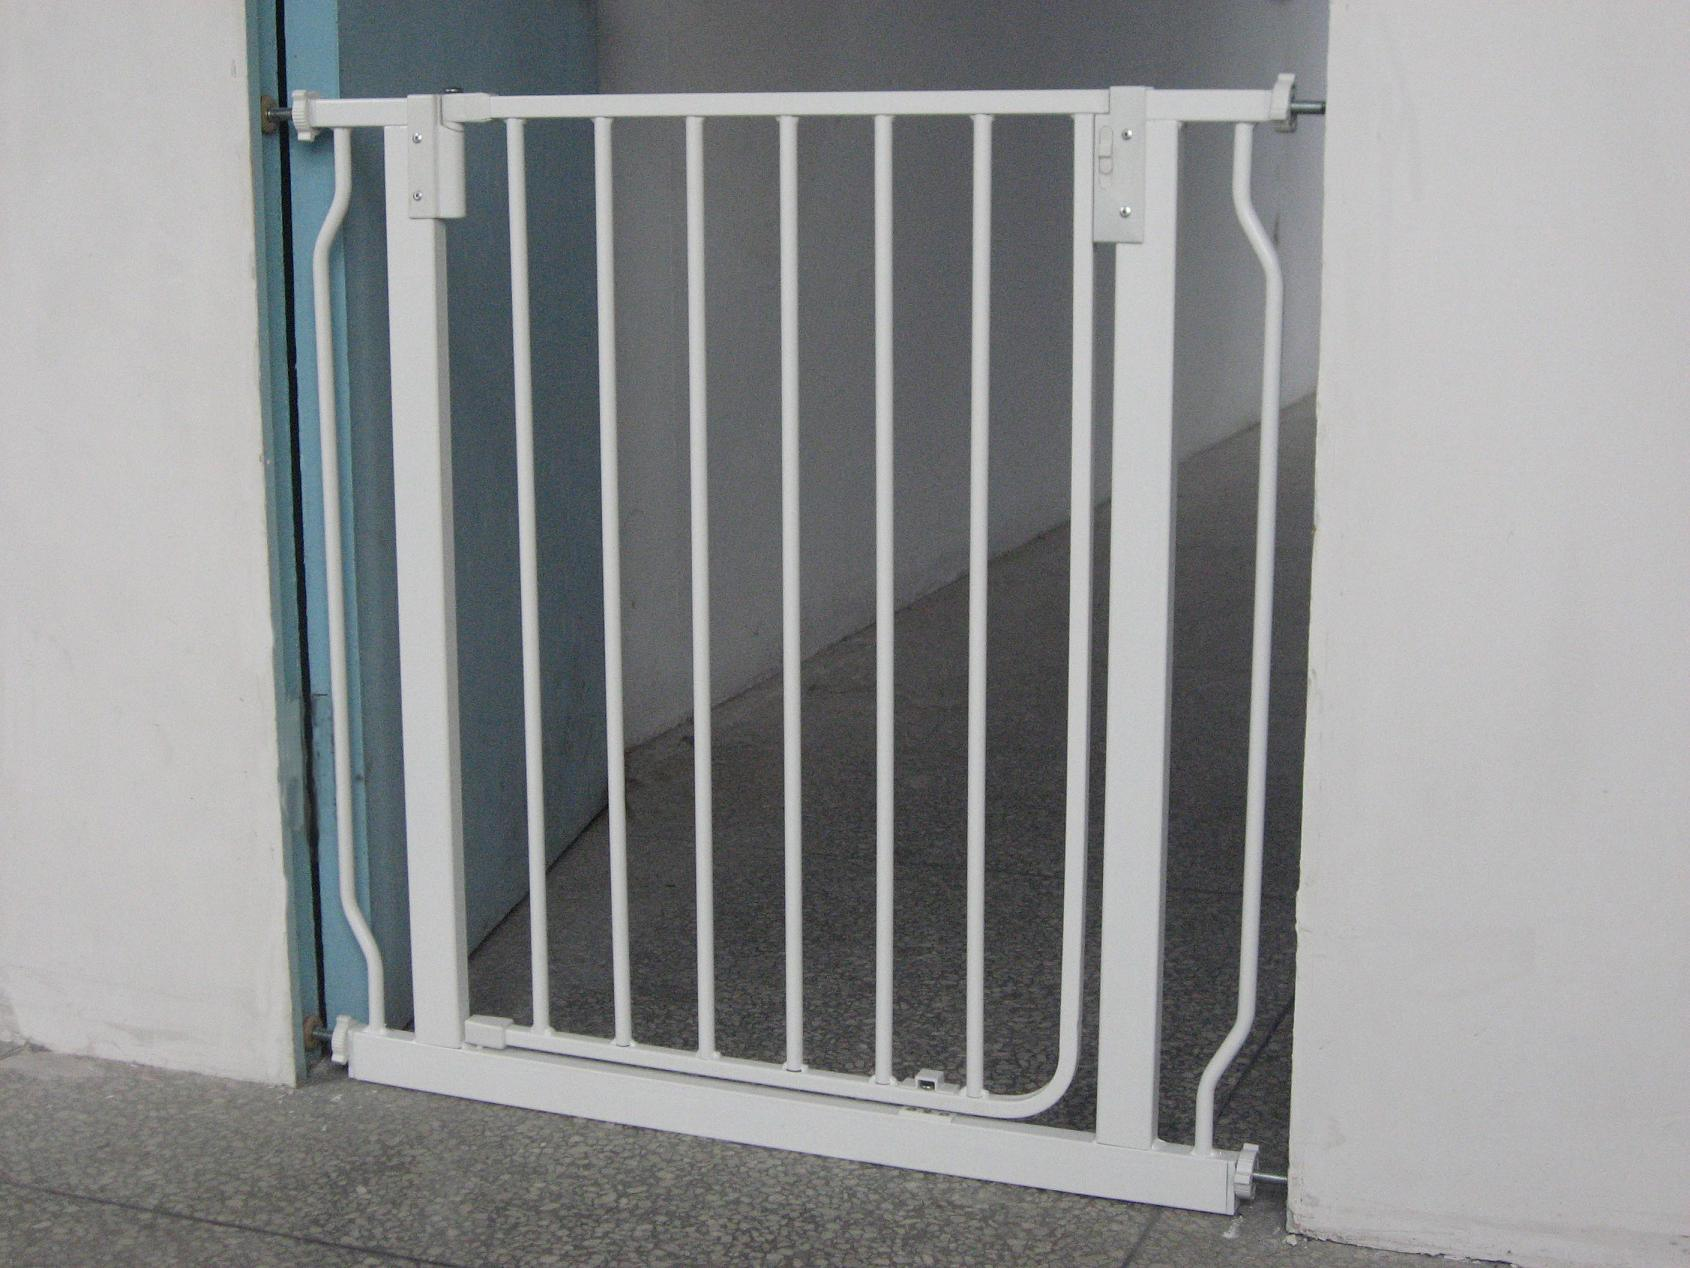 China Child Safety Gate (Metal) (HDL-027) - China Baby Safety Gate ...